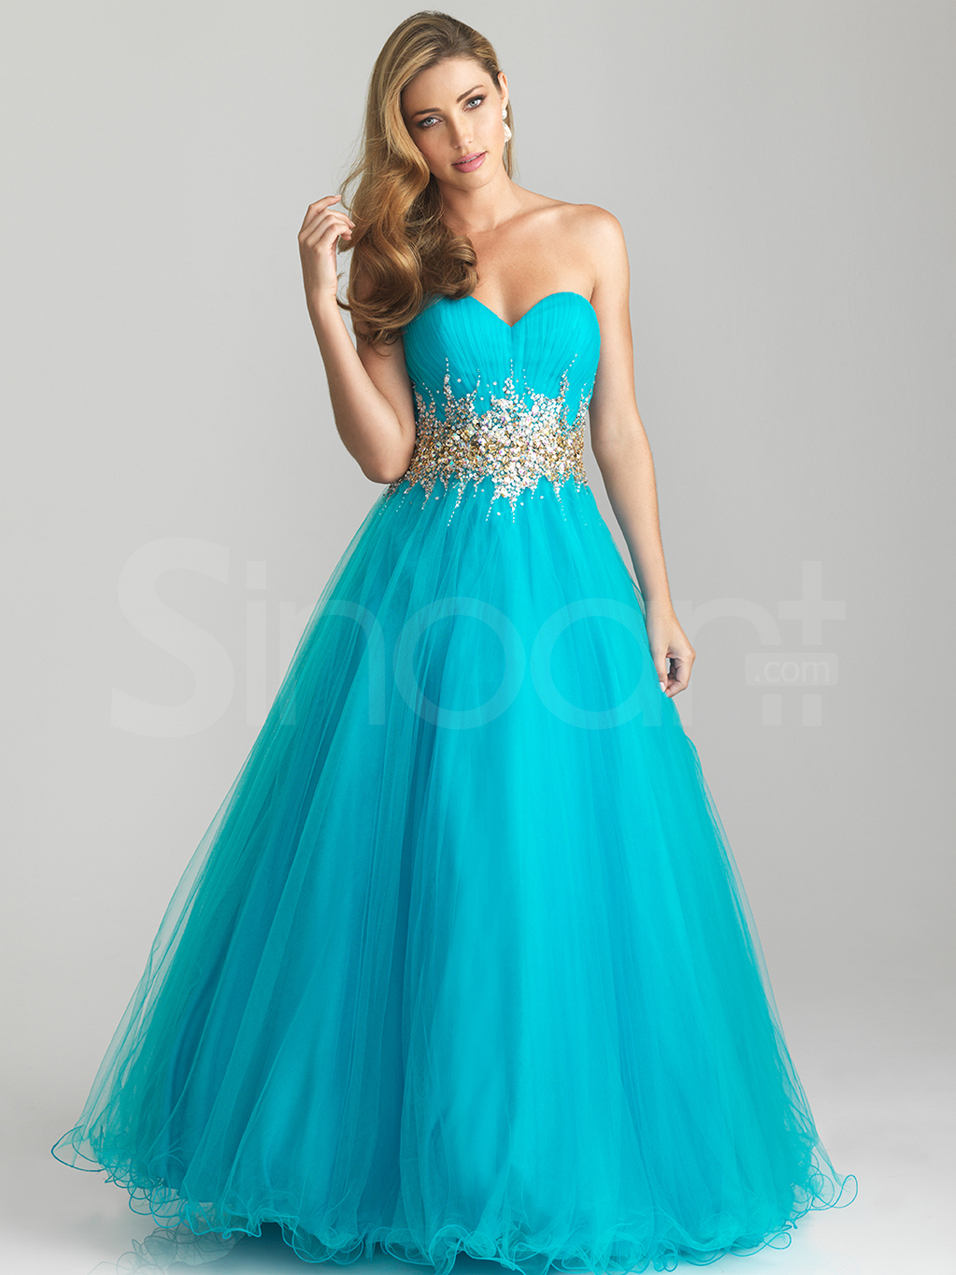 Girls Graduation Dresses Formal - Prom Dresses Cheap